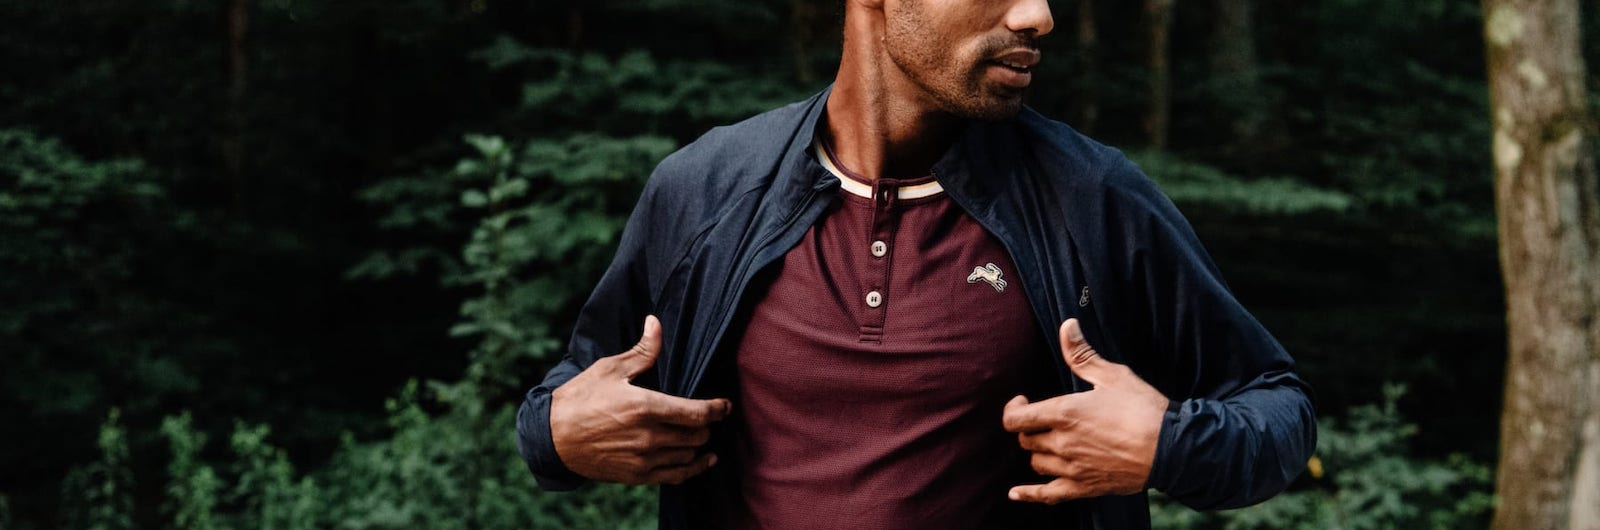 10 Henleys to Wear This Fall